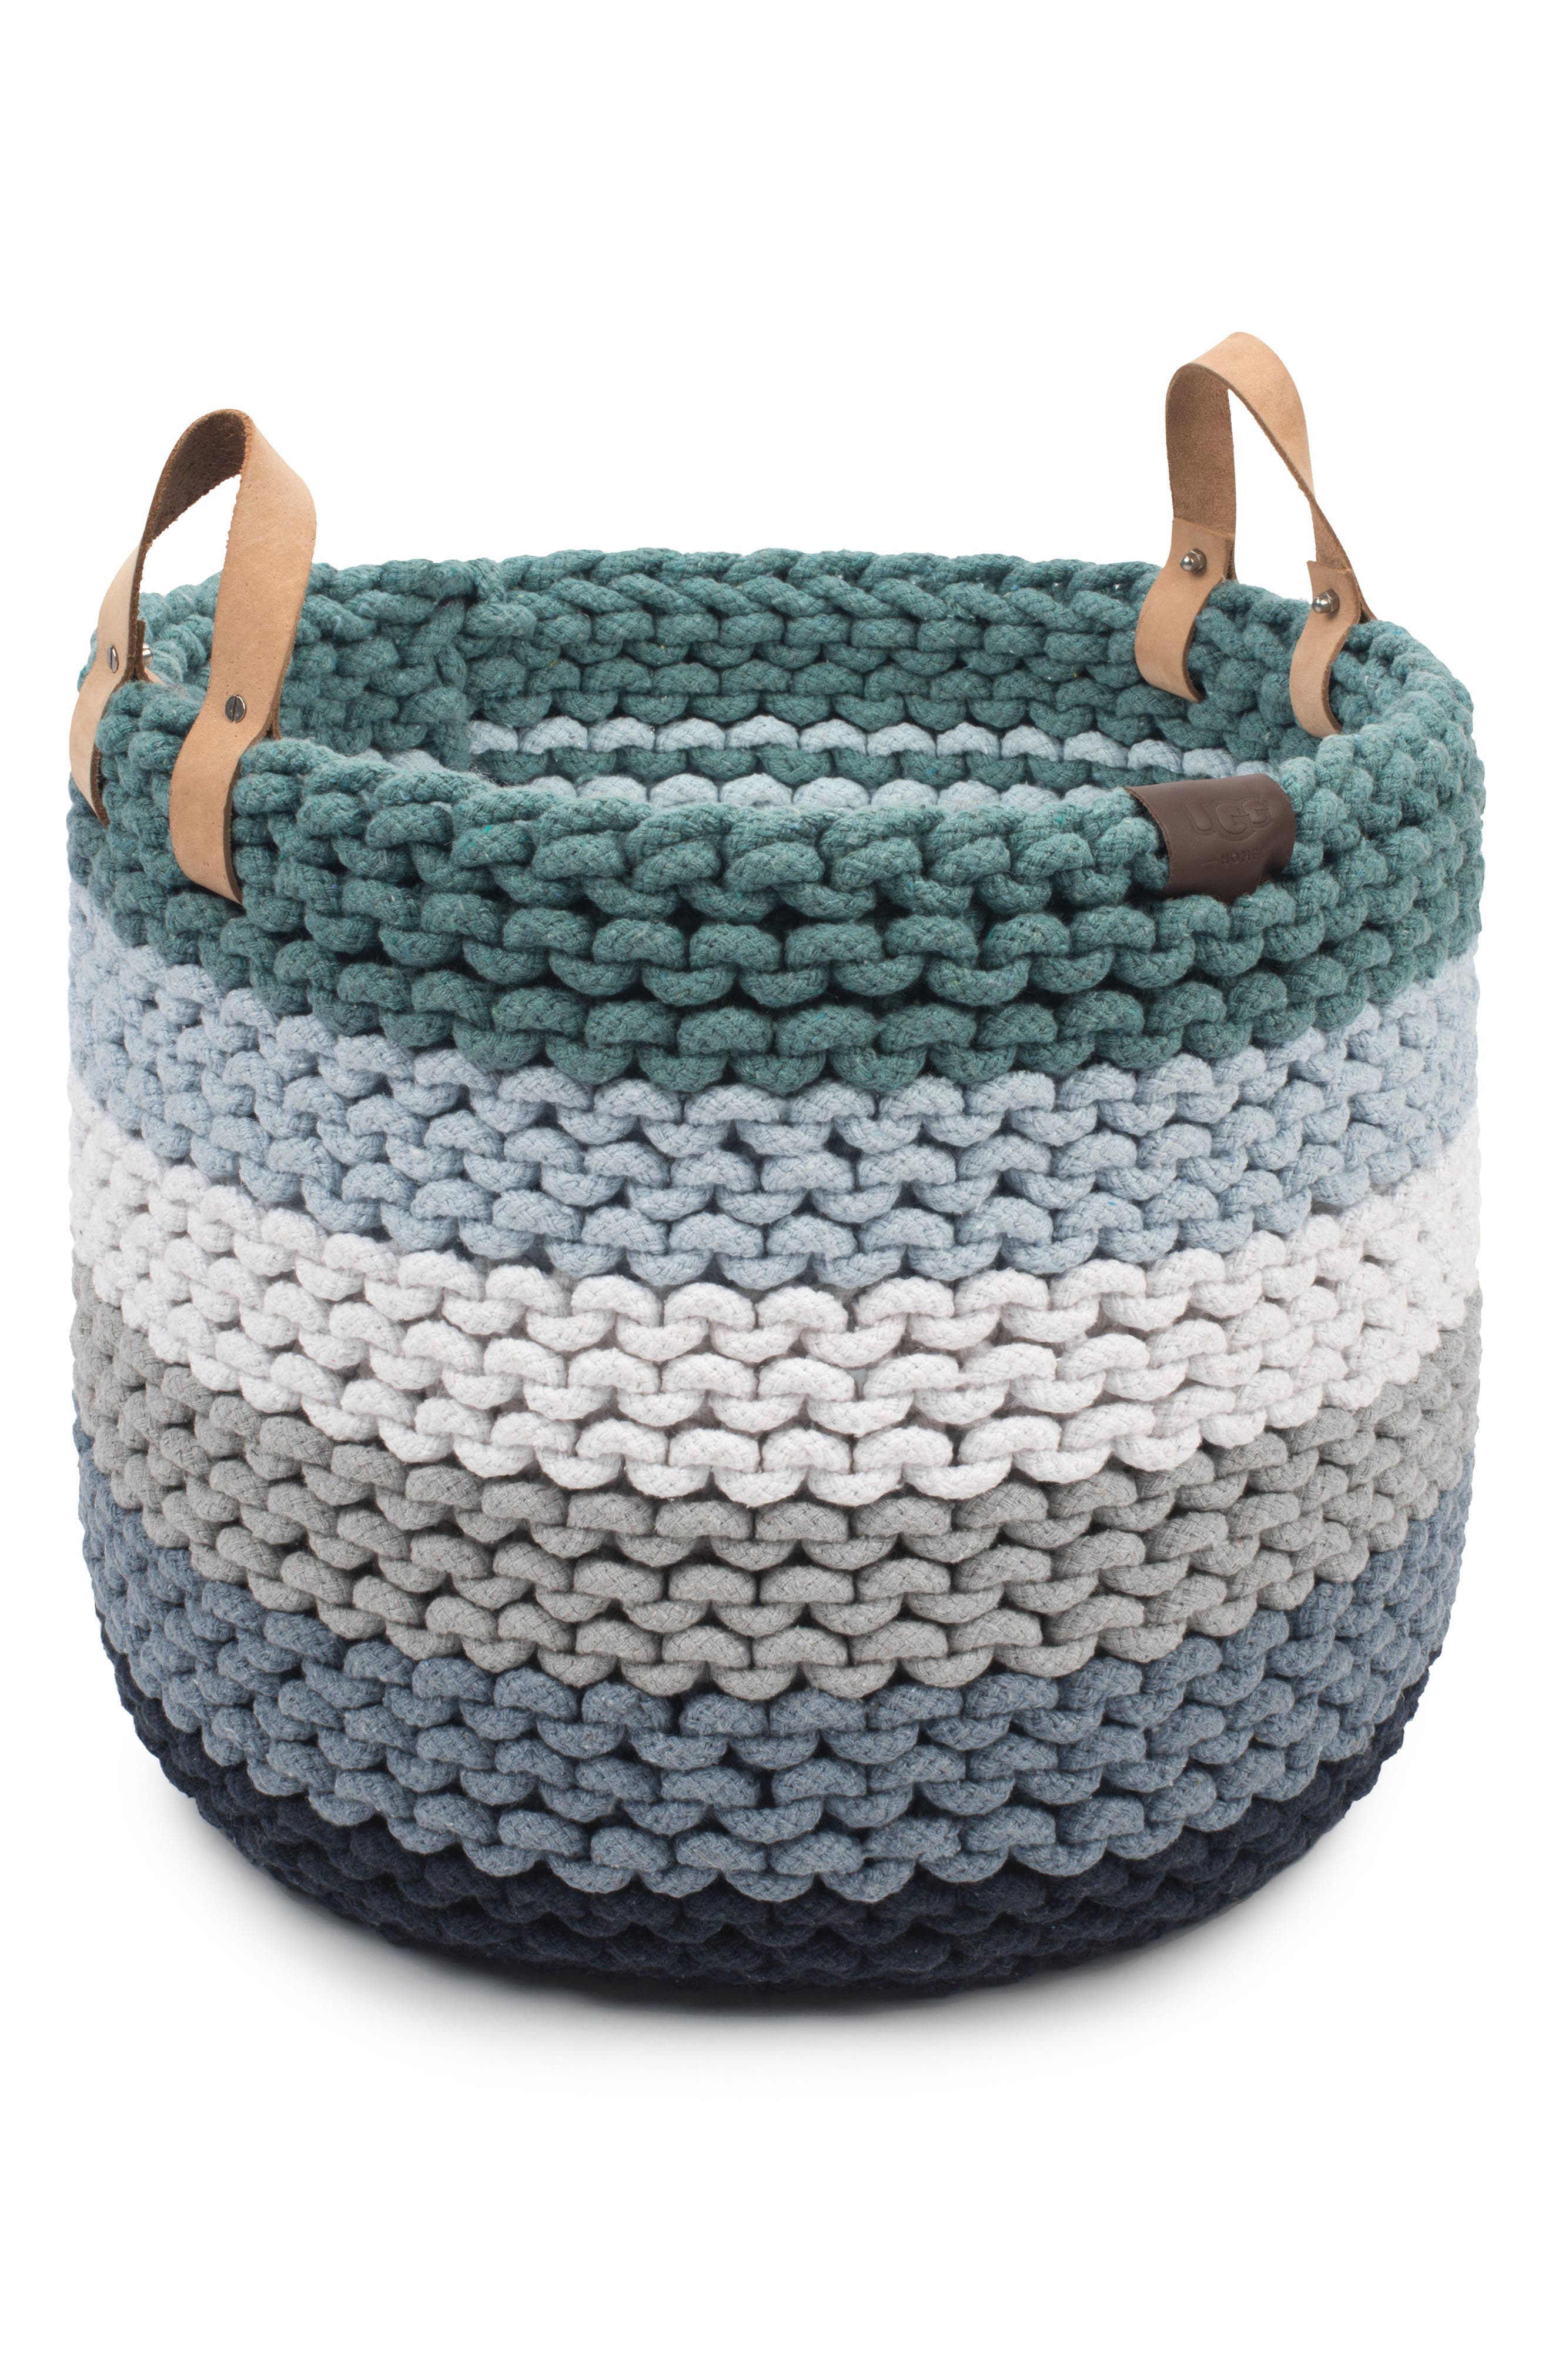 Rainbow Rope Basket,                             Main thumbnail 1, color,                             IMPERIAL